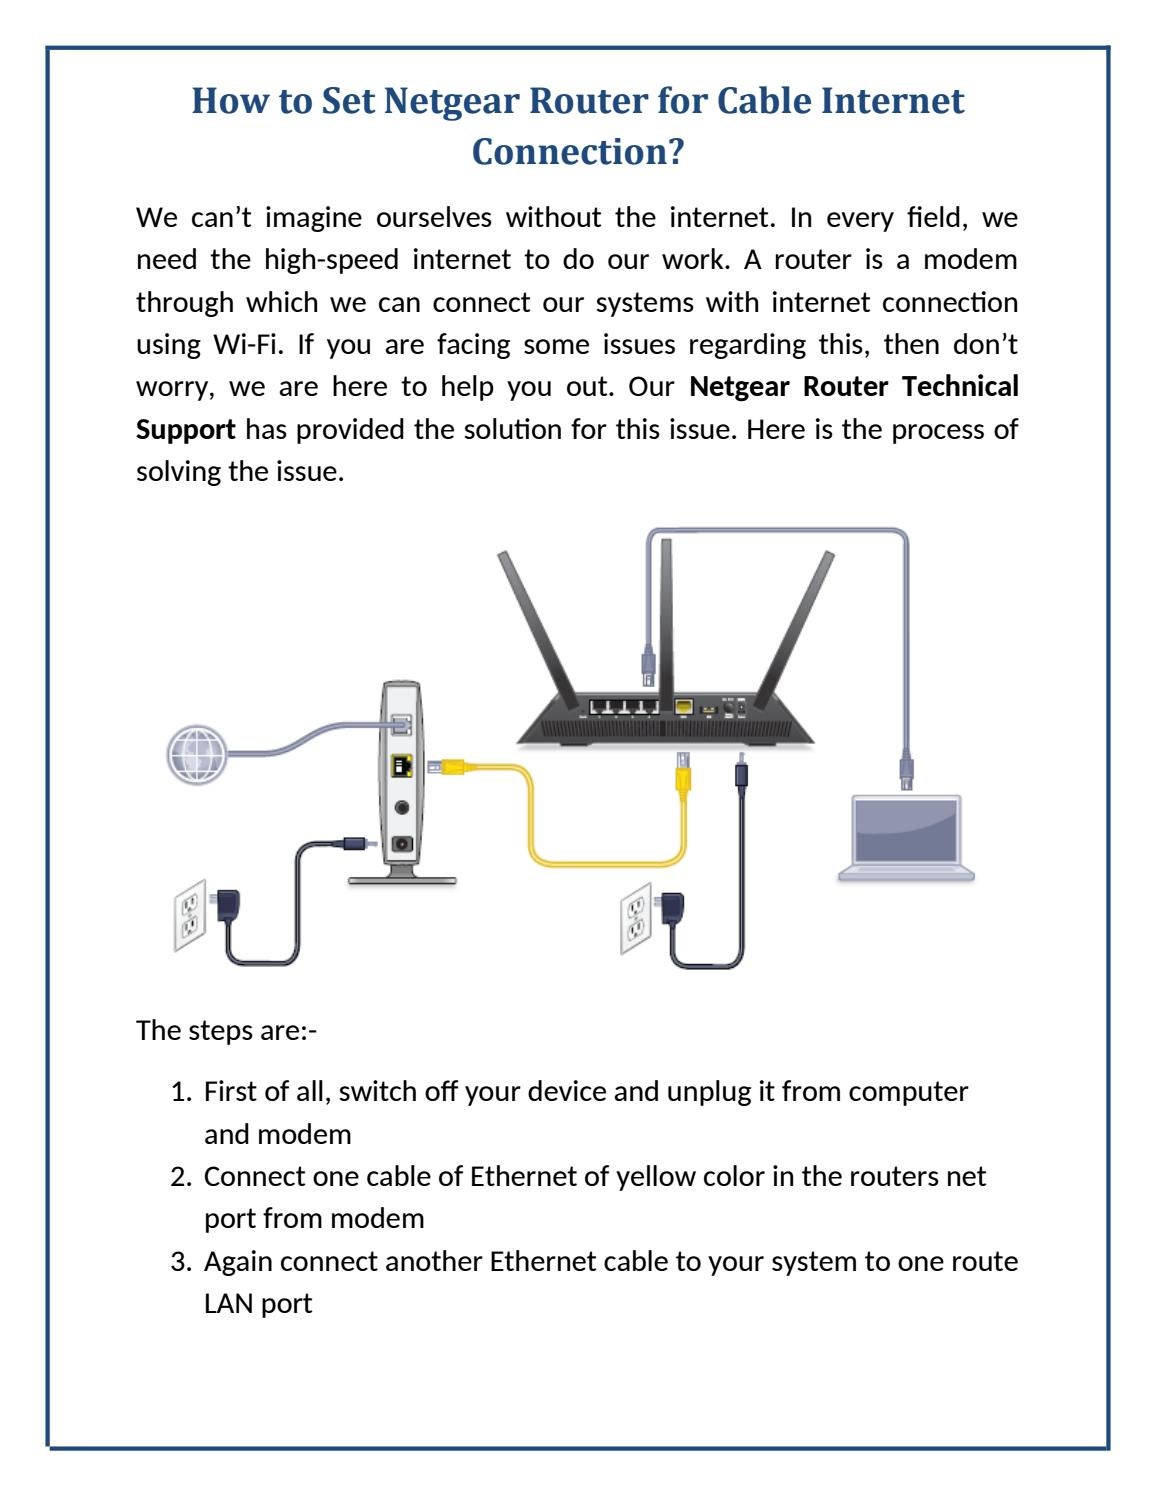 How To Set Netgear Router For Cable Internet Connection By Modem Ethernet Wiring Diagram Netgearsupportau Issuu